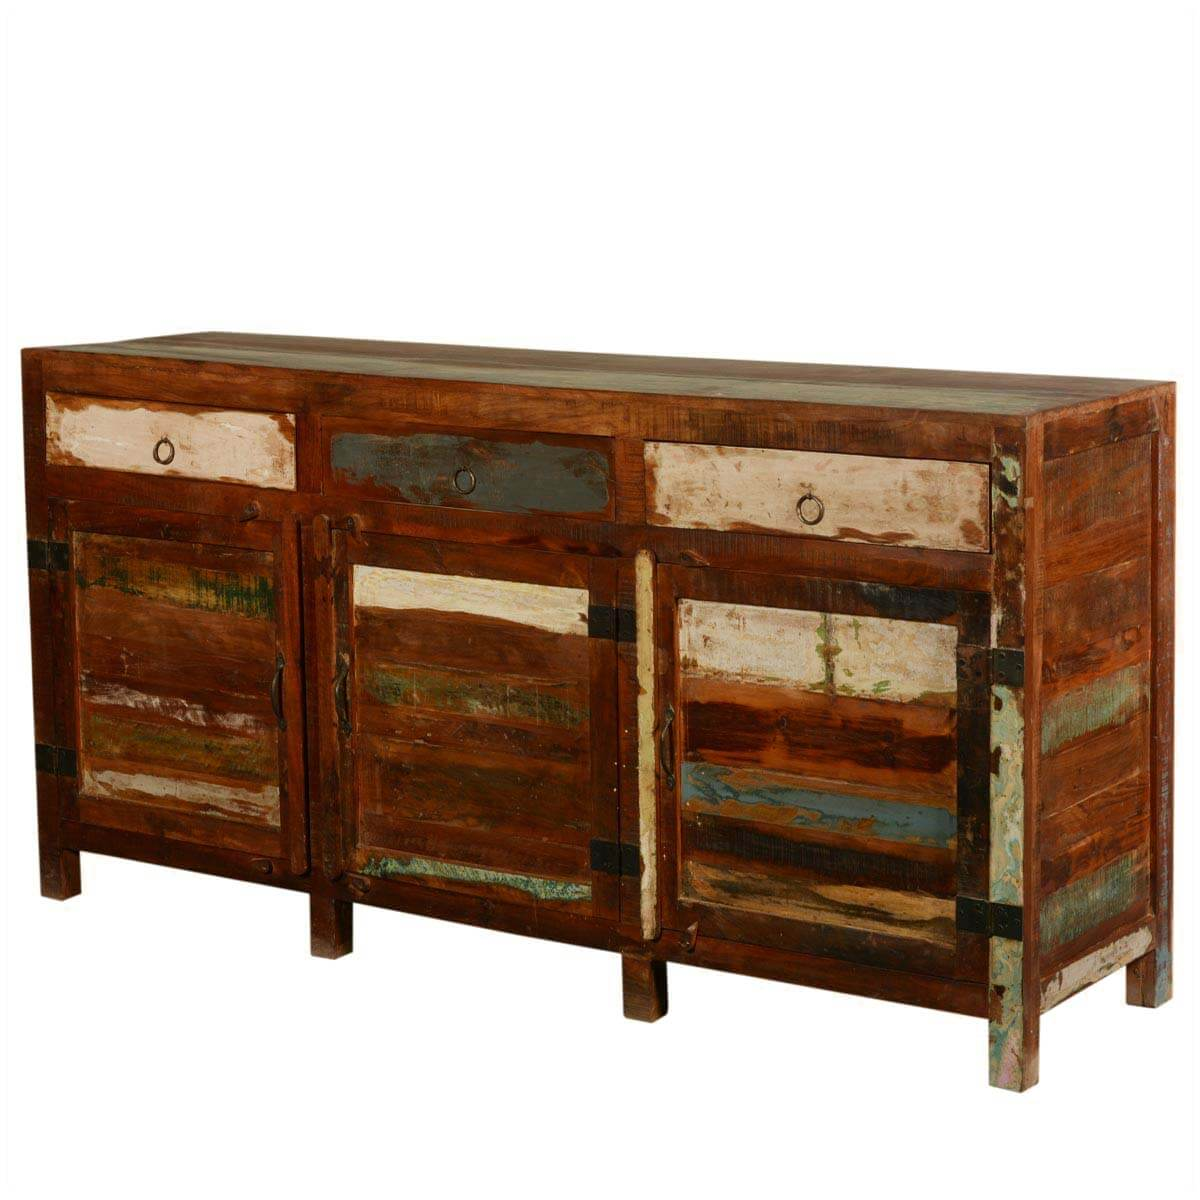 New Memories Reclaimed Wood 3 Section Buffet Sideboard Cabinet